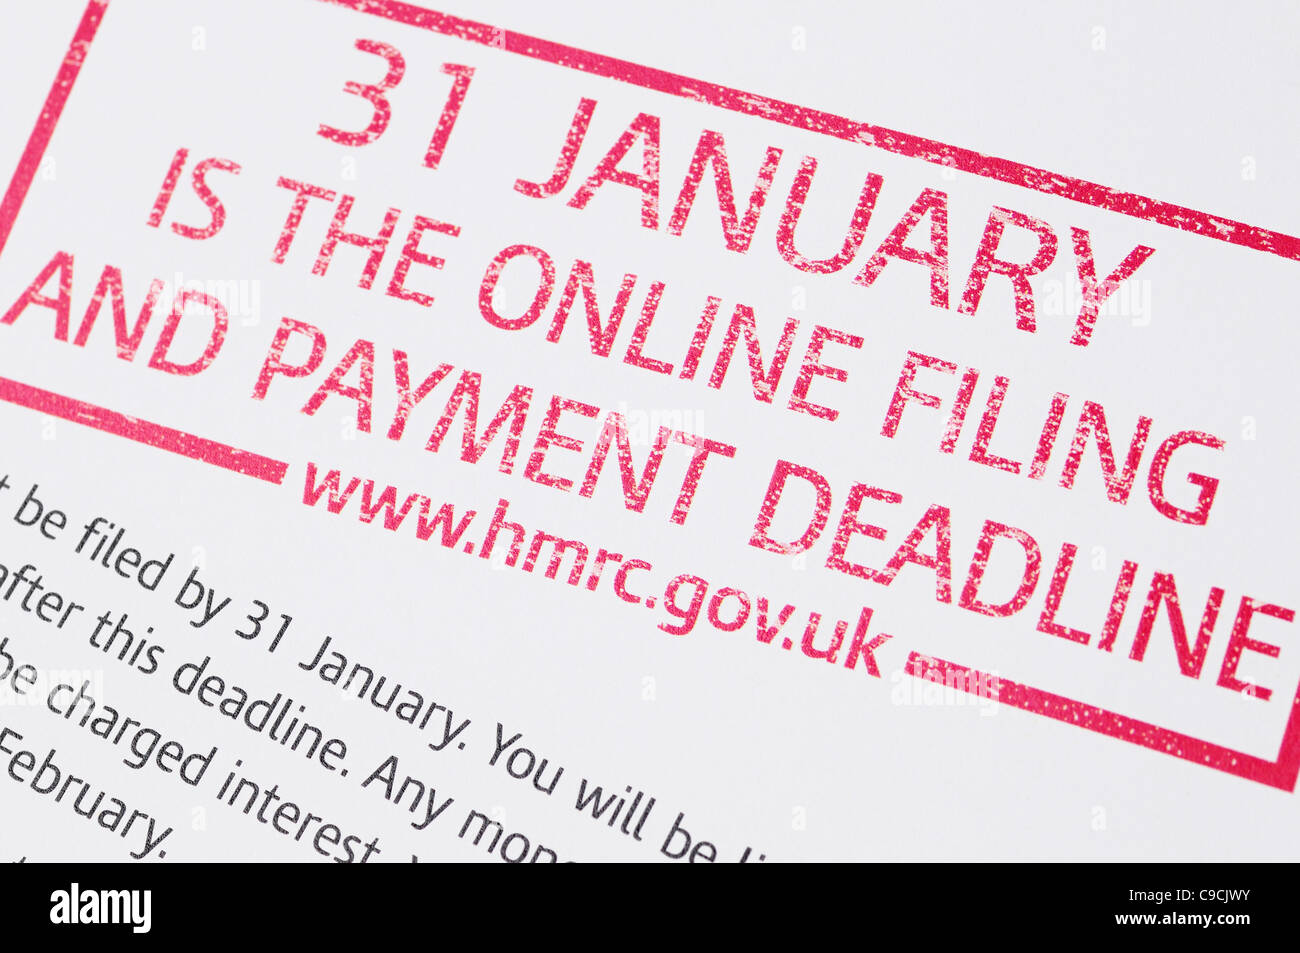 Tax Deadline Notice, Issued by HM Revenue and Customs, UK. - Stock Image